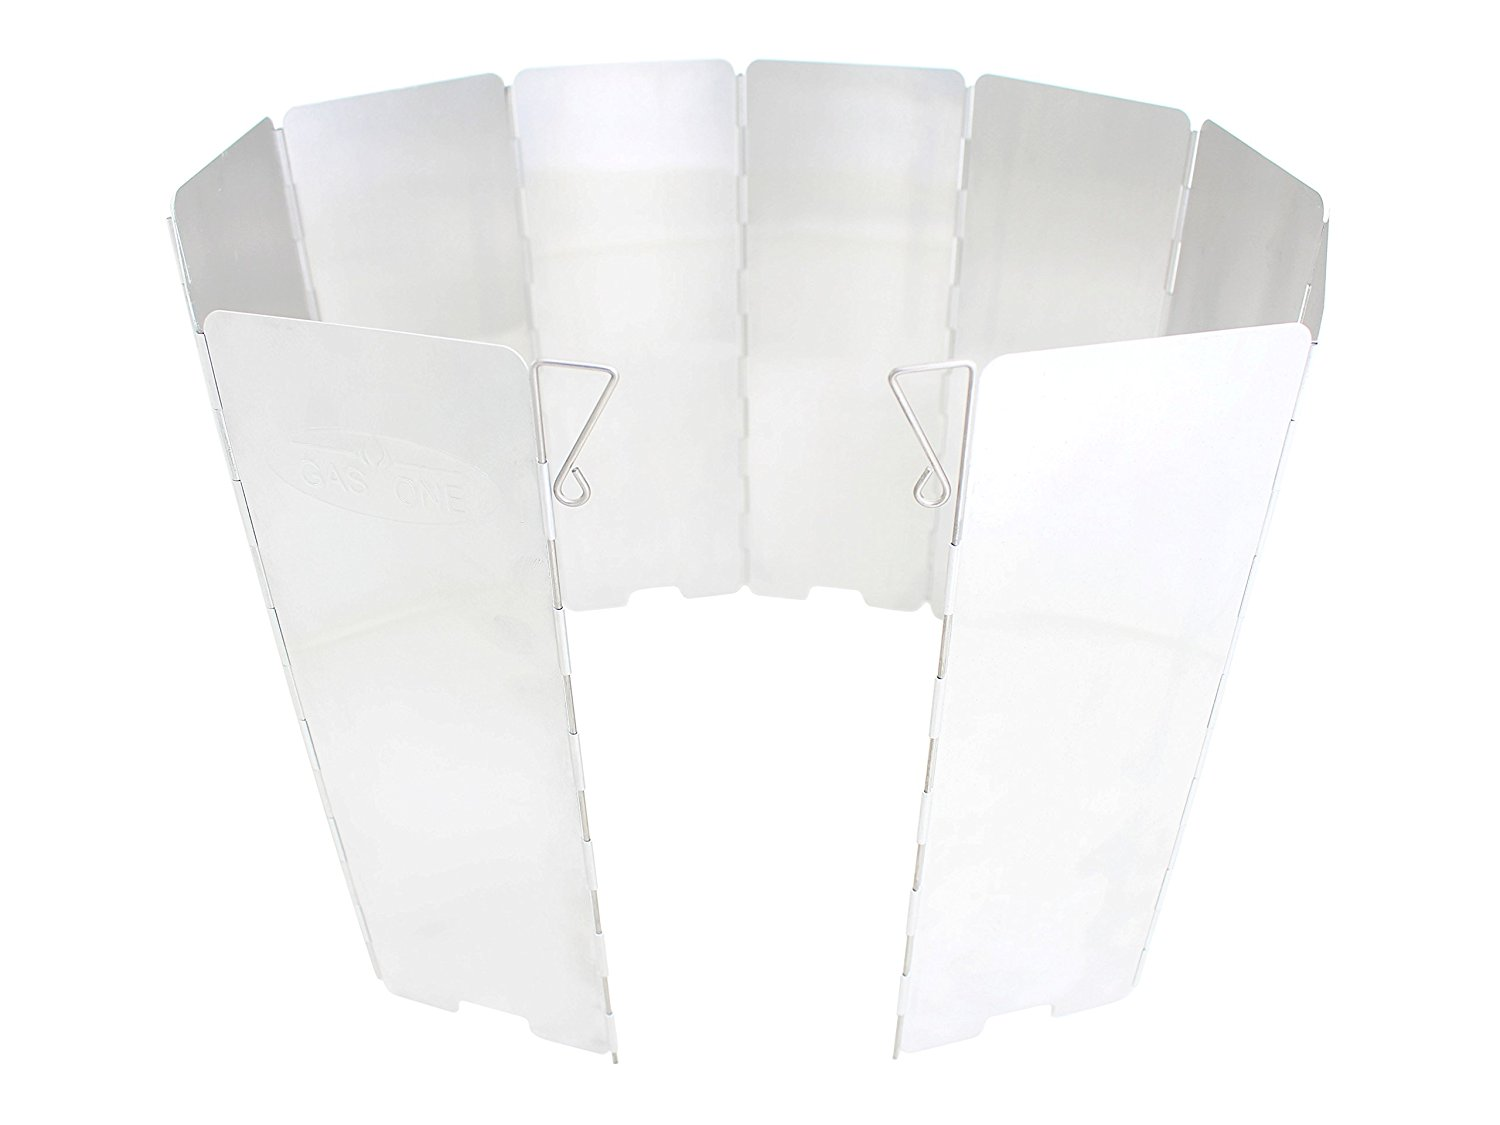 Gas One Aluminum 10 Plates Windscreen: For Use with Gas One Stove and Other Backpacking Stoves, Camping Stoves, Butane Stoves, Alcohol Stoves with Carrying Case